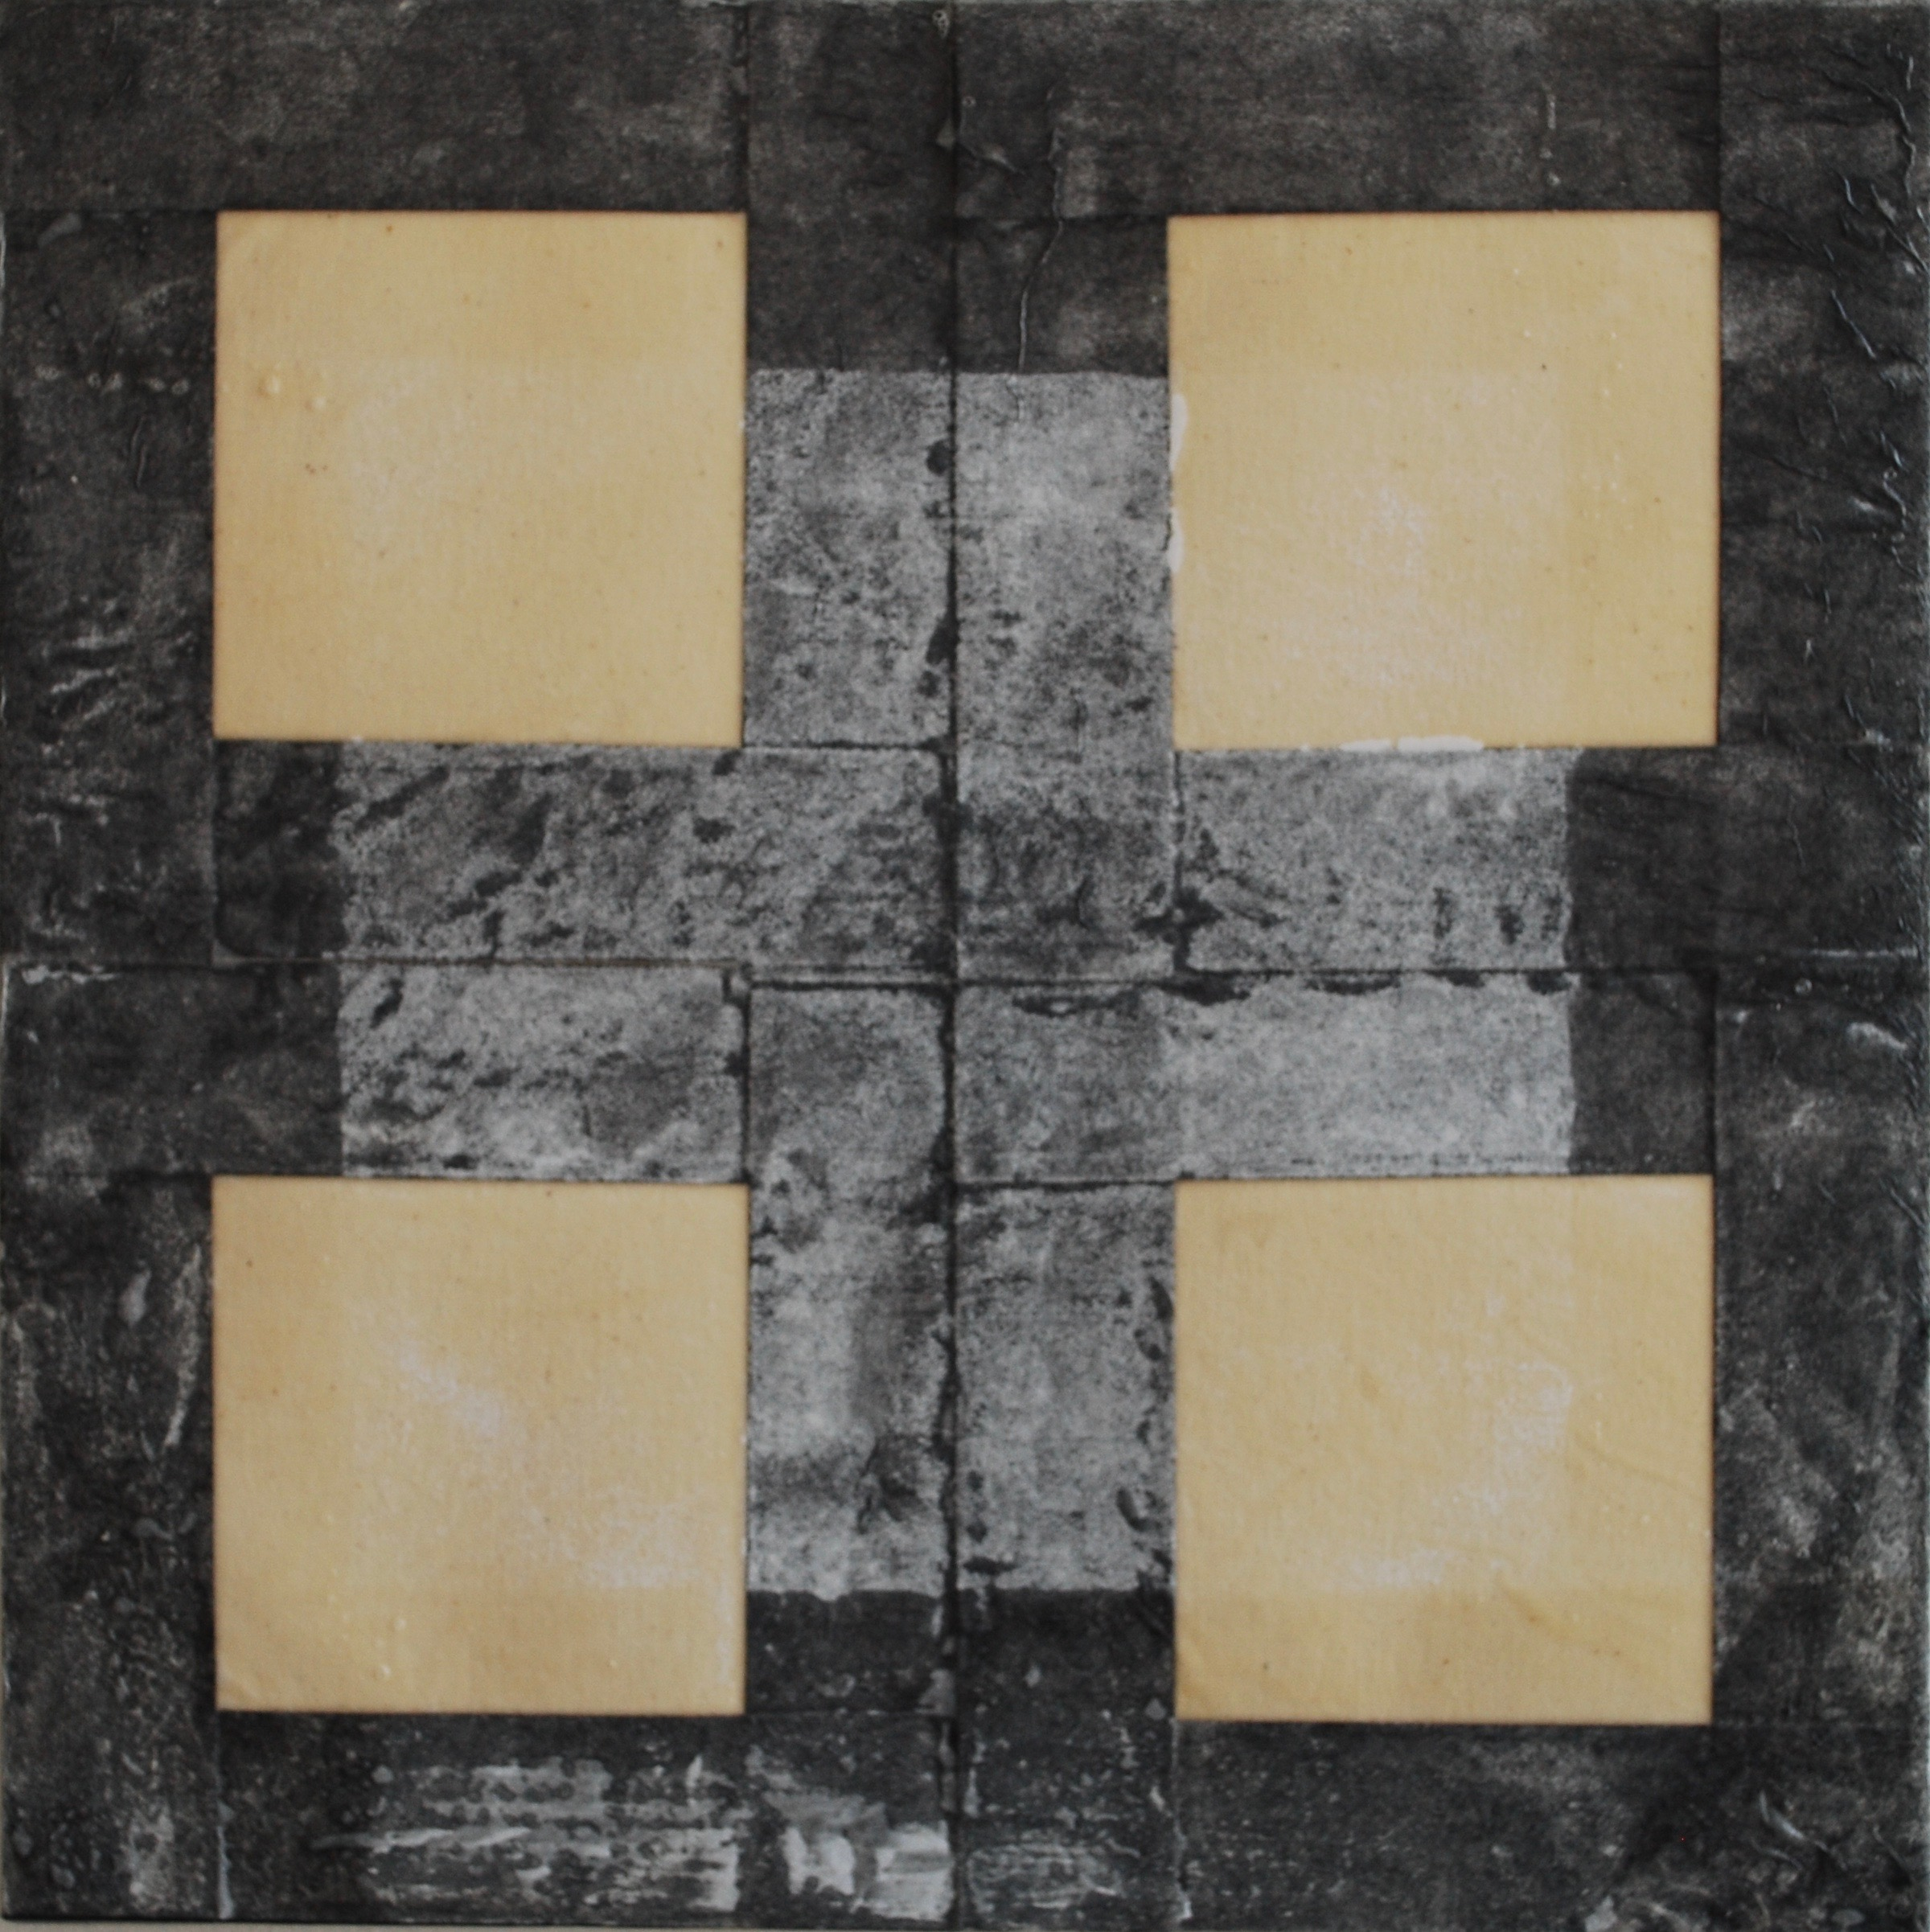 SoHyun Bae, Bojagi #13, 2001, rice-paper on sand-paper on canvas, 18 x 18 inches